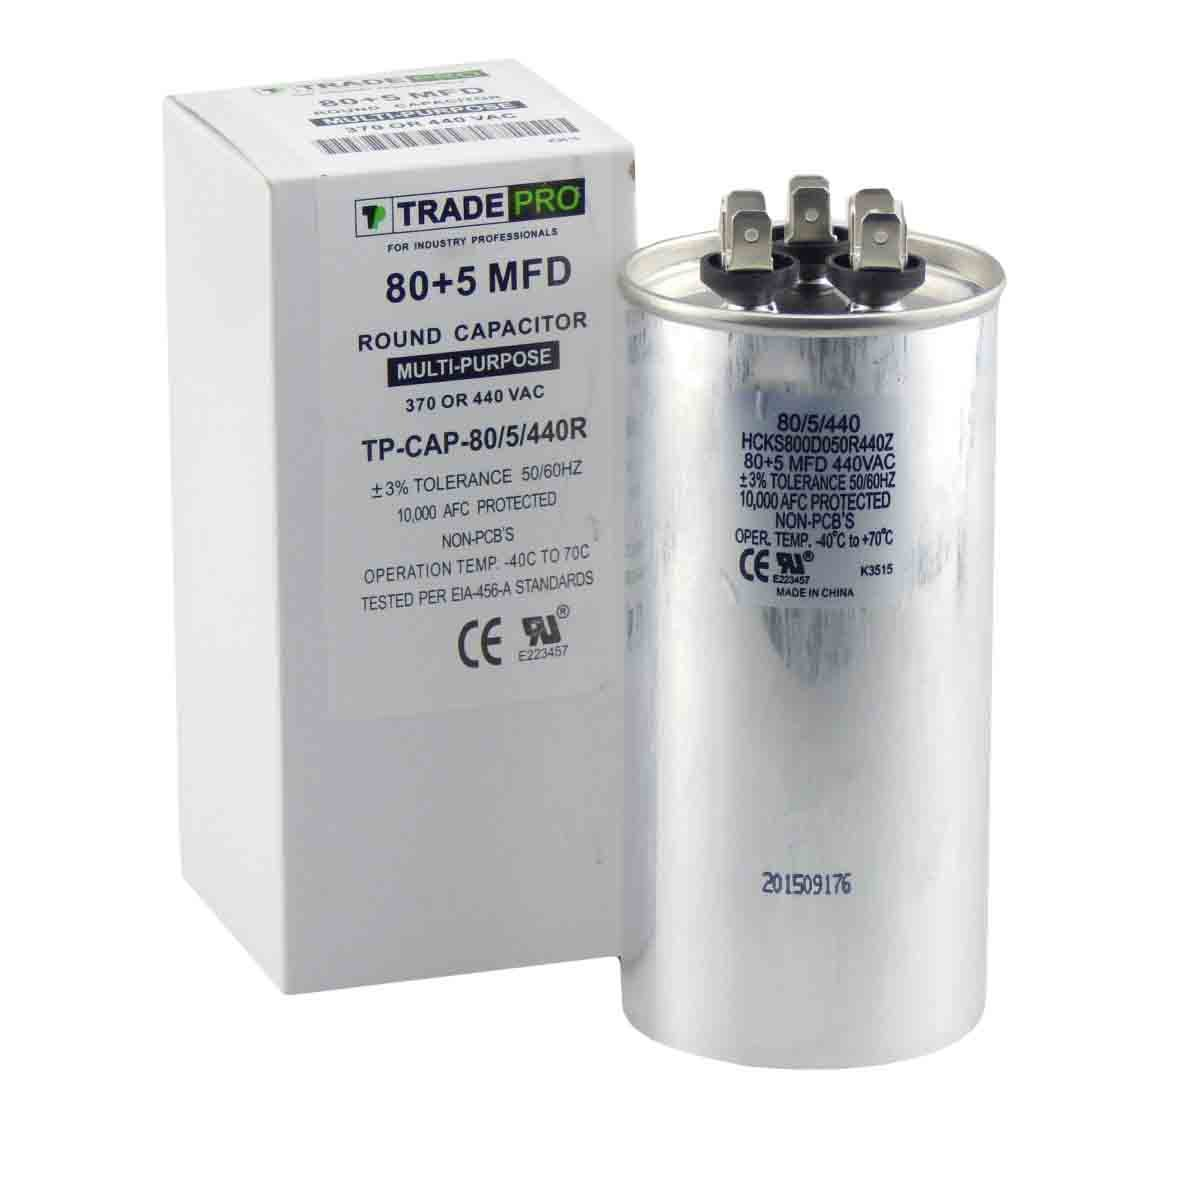 TradePro 80/5 MFD 440 or 370 Volt Round Run Capacitor Replacement 80+5